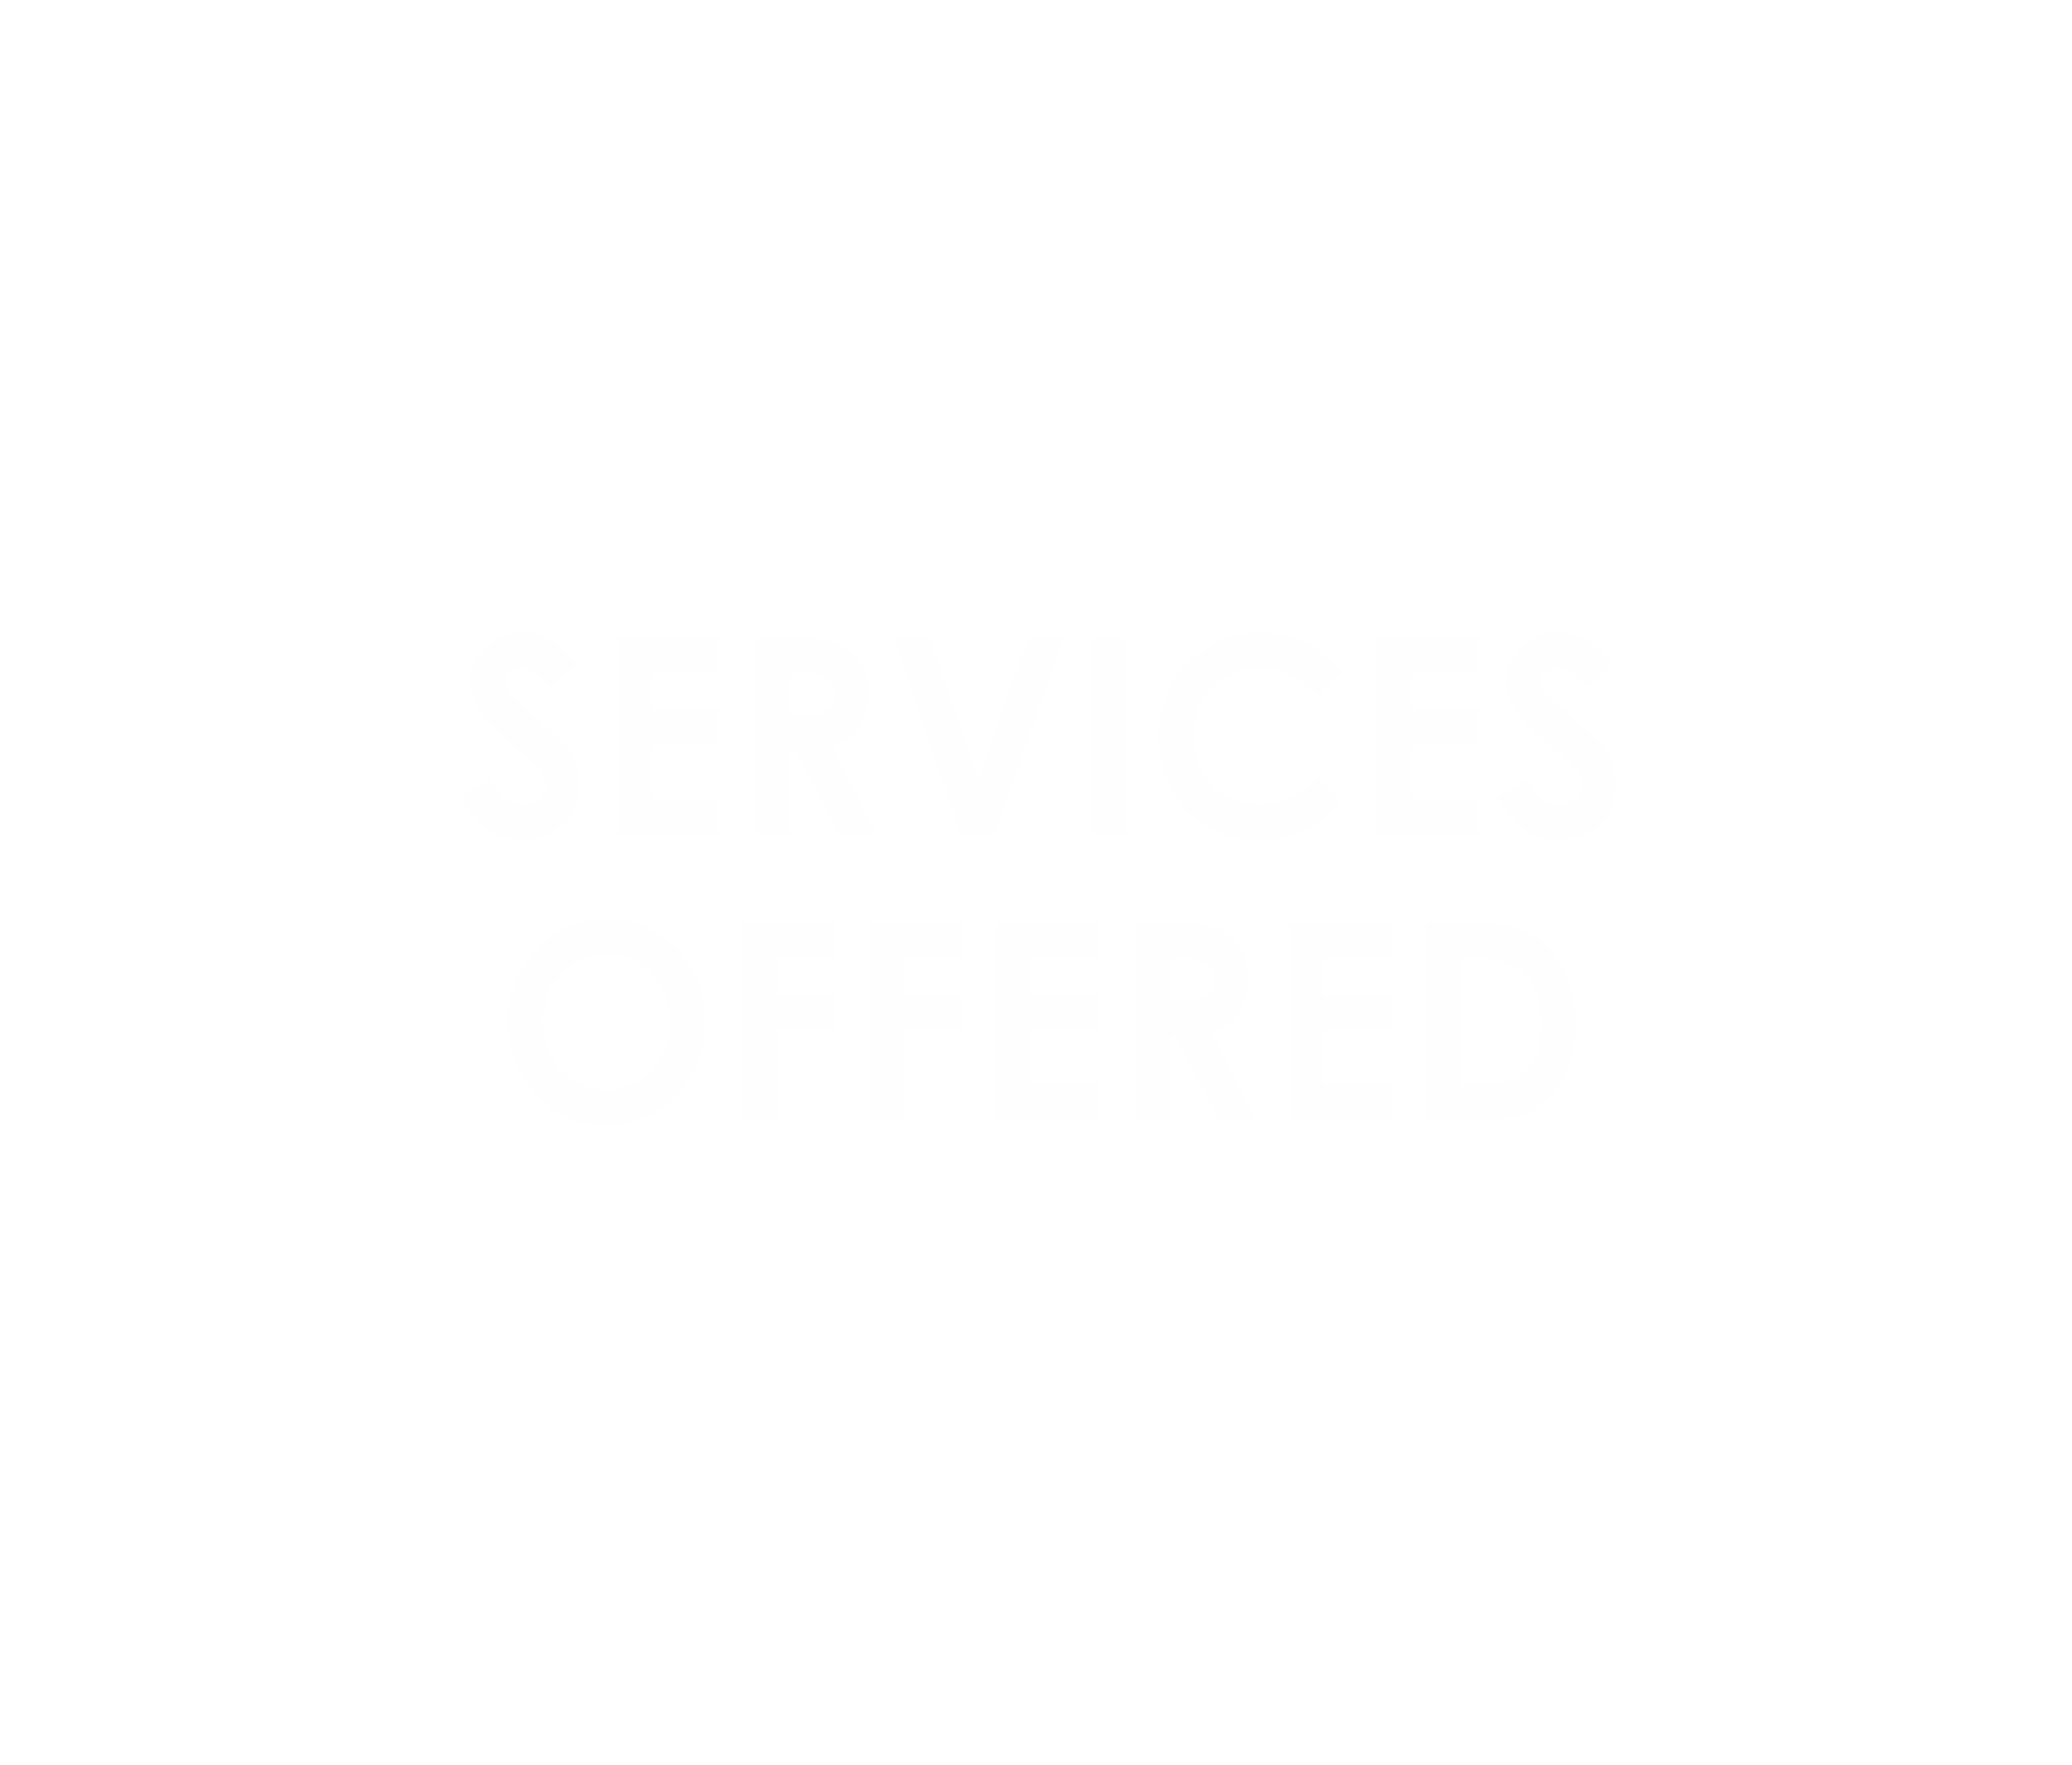 Services Offered